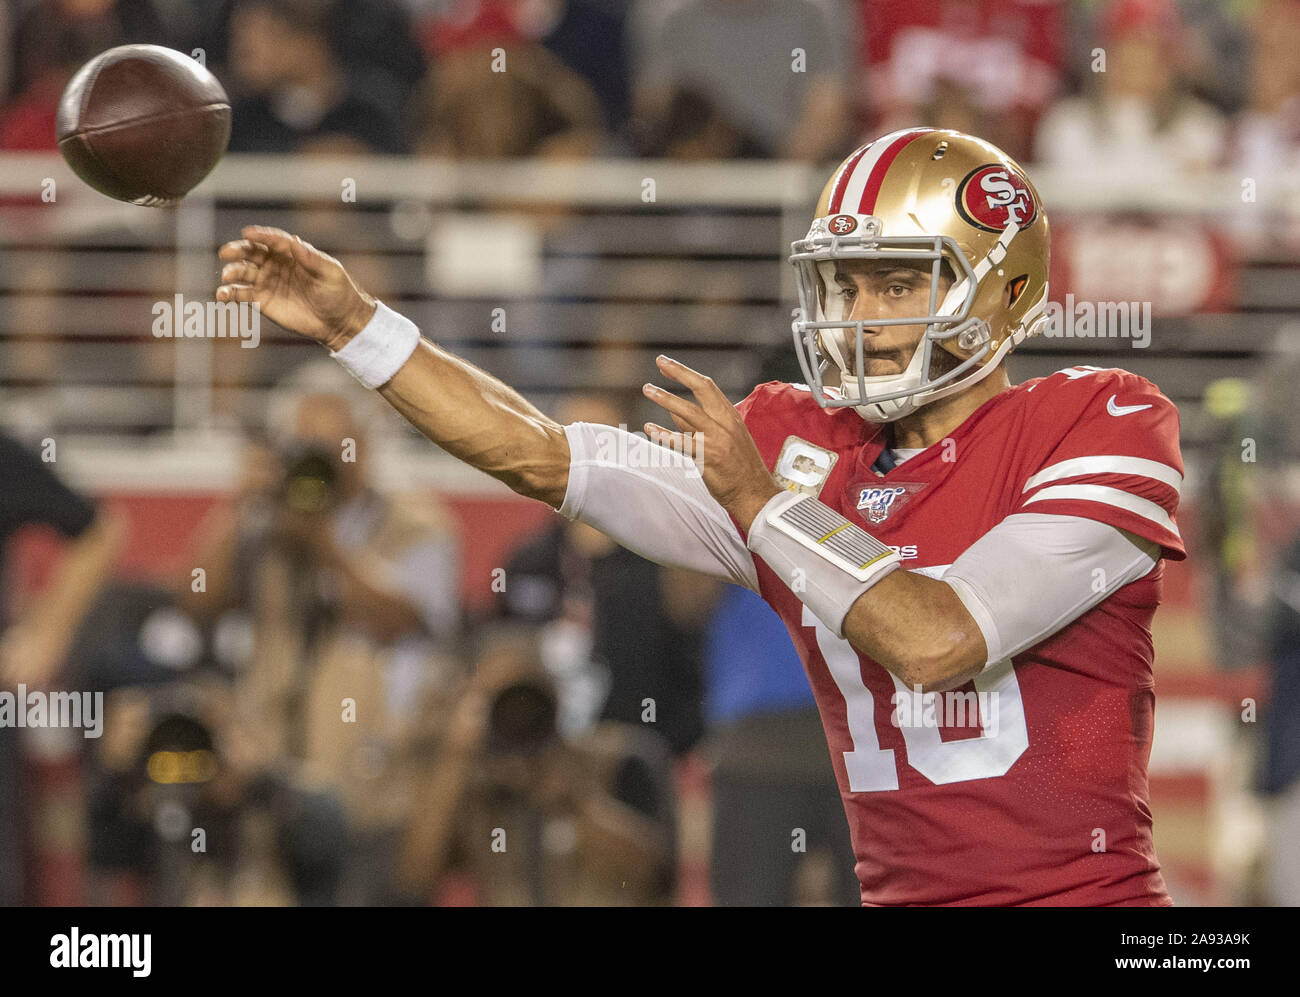 Santa Clara, California, USA. 11th Nov, 2019. San Francisco 49ers quarterback Jimmy Garoppolo (10) on Monday, November 11, 2019, at Levis Stadium in Santa Clara, California. The Seahawks defeated the 49ers 27-24 in Over Time. Credit: Al Golub/ZUMA Wire/Alamy Live News Stock Photo